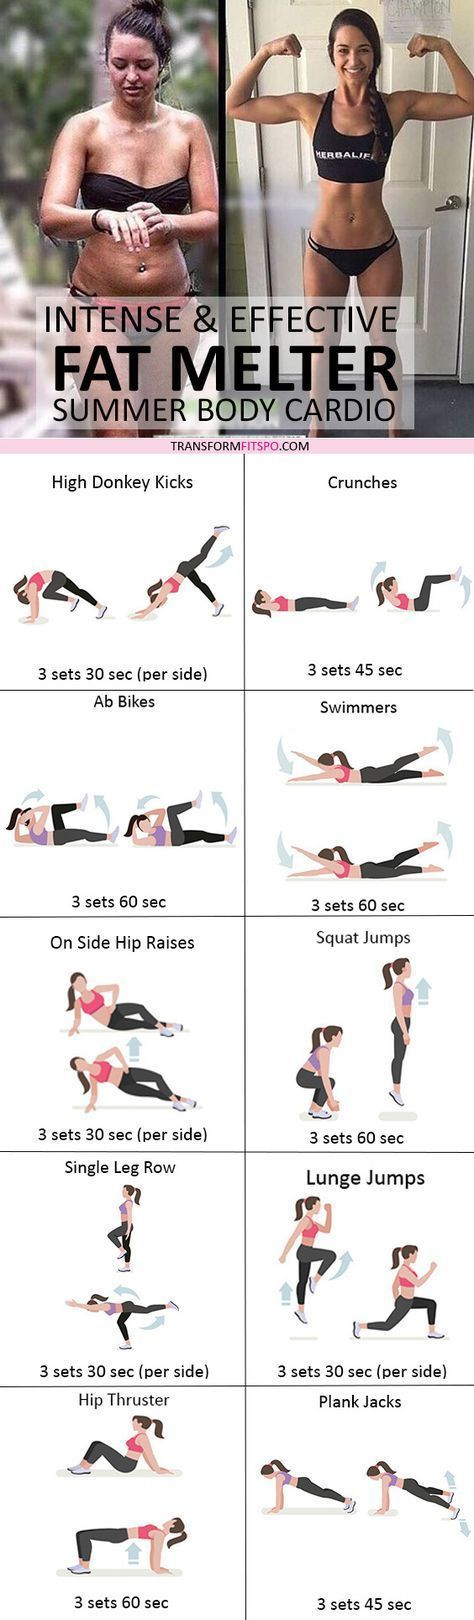 23 Intense Cardio Workouts To Get Rid Of Stubborn Belly Fat! - #belly #Cardio #f...